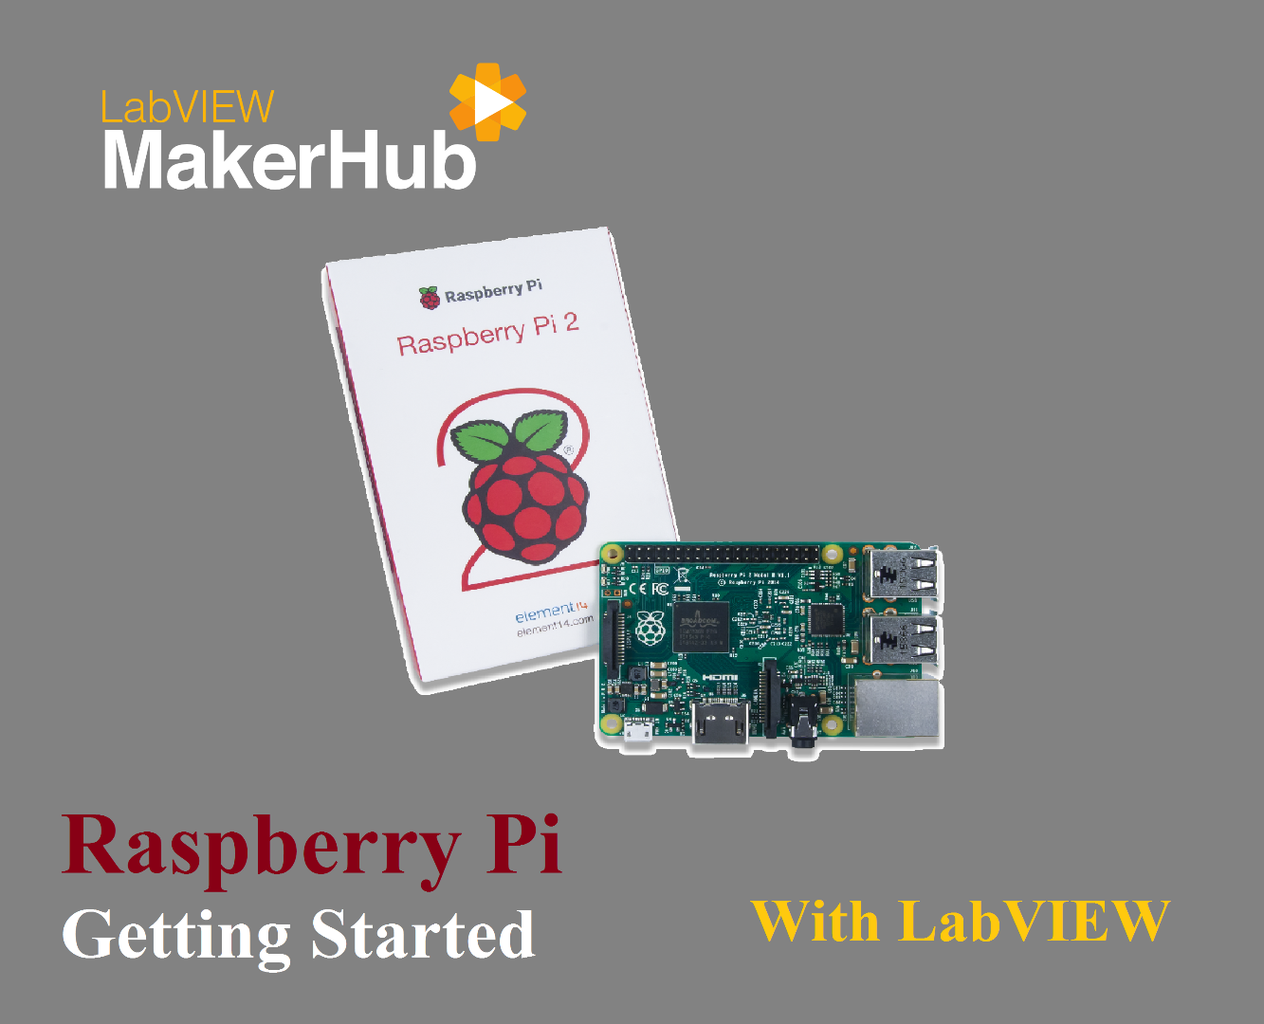 Install LabVIEW on Your Raspberry Pi